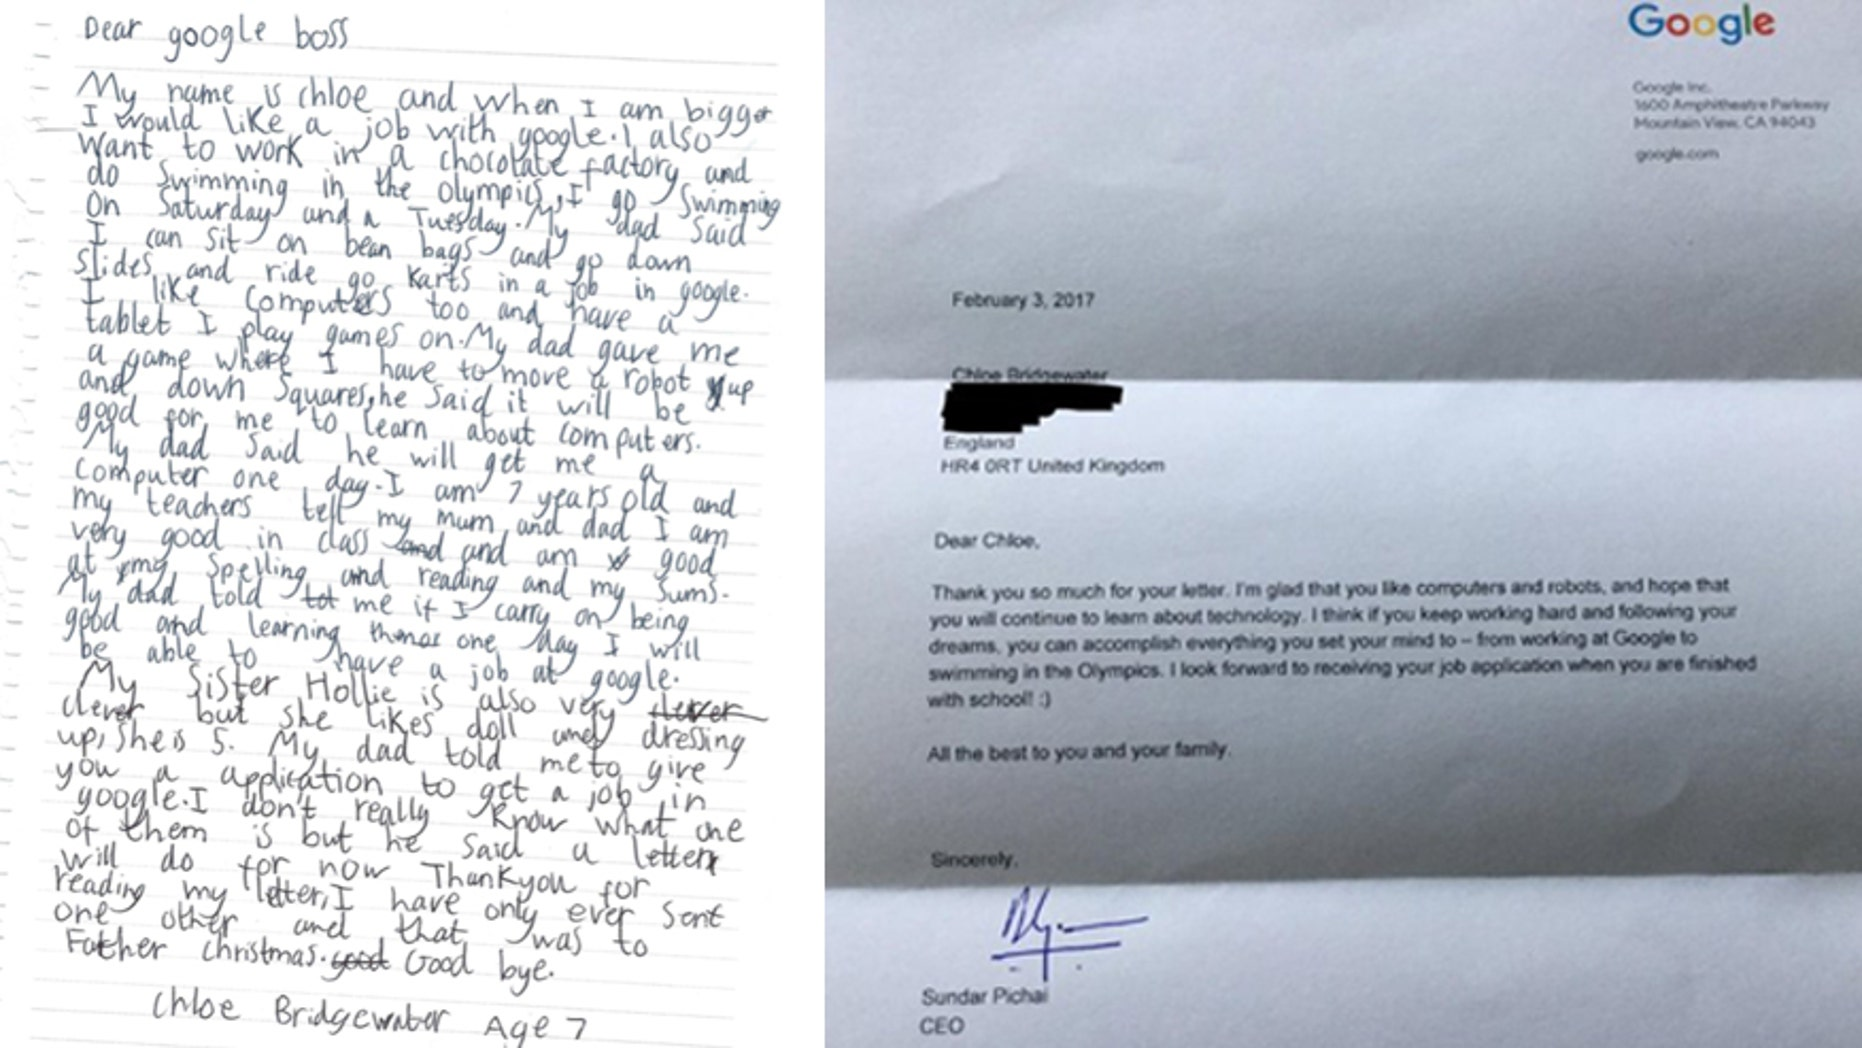 (Left) Letter Chloe Bridgewater, 7, sent to Google. (Right) Response letter from Google CEO Sundar Pichai.